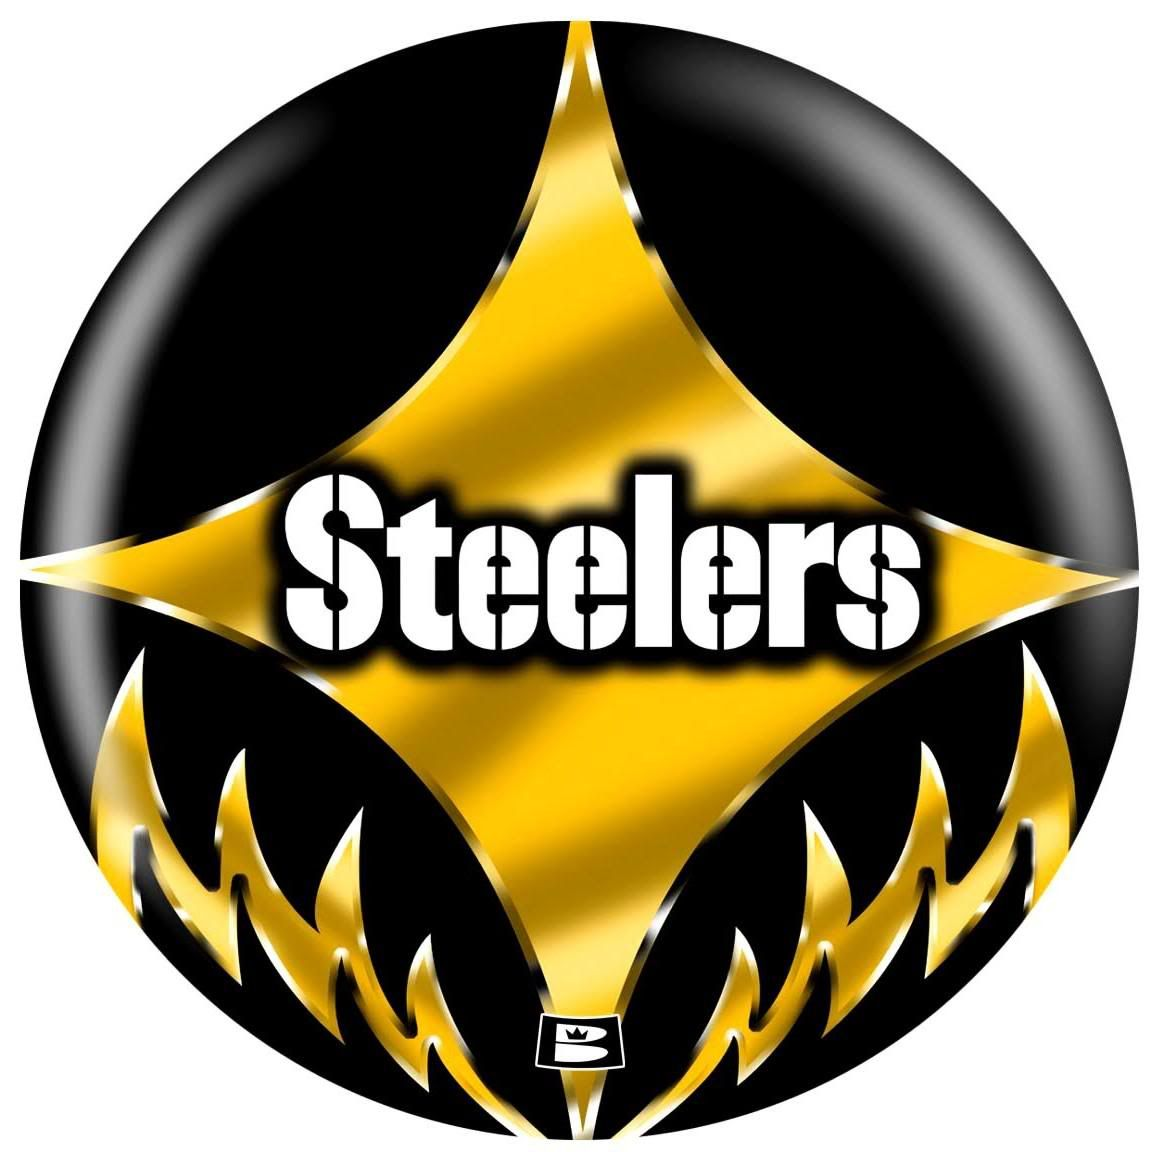 image detail for large steelers logo graphics pictures images rh pinterest com NFL Pittsburgh Steeler Logo Pittsburgh Steelers Logo Font